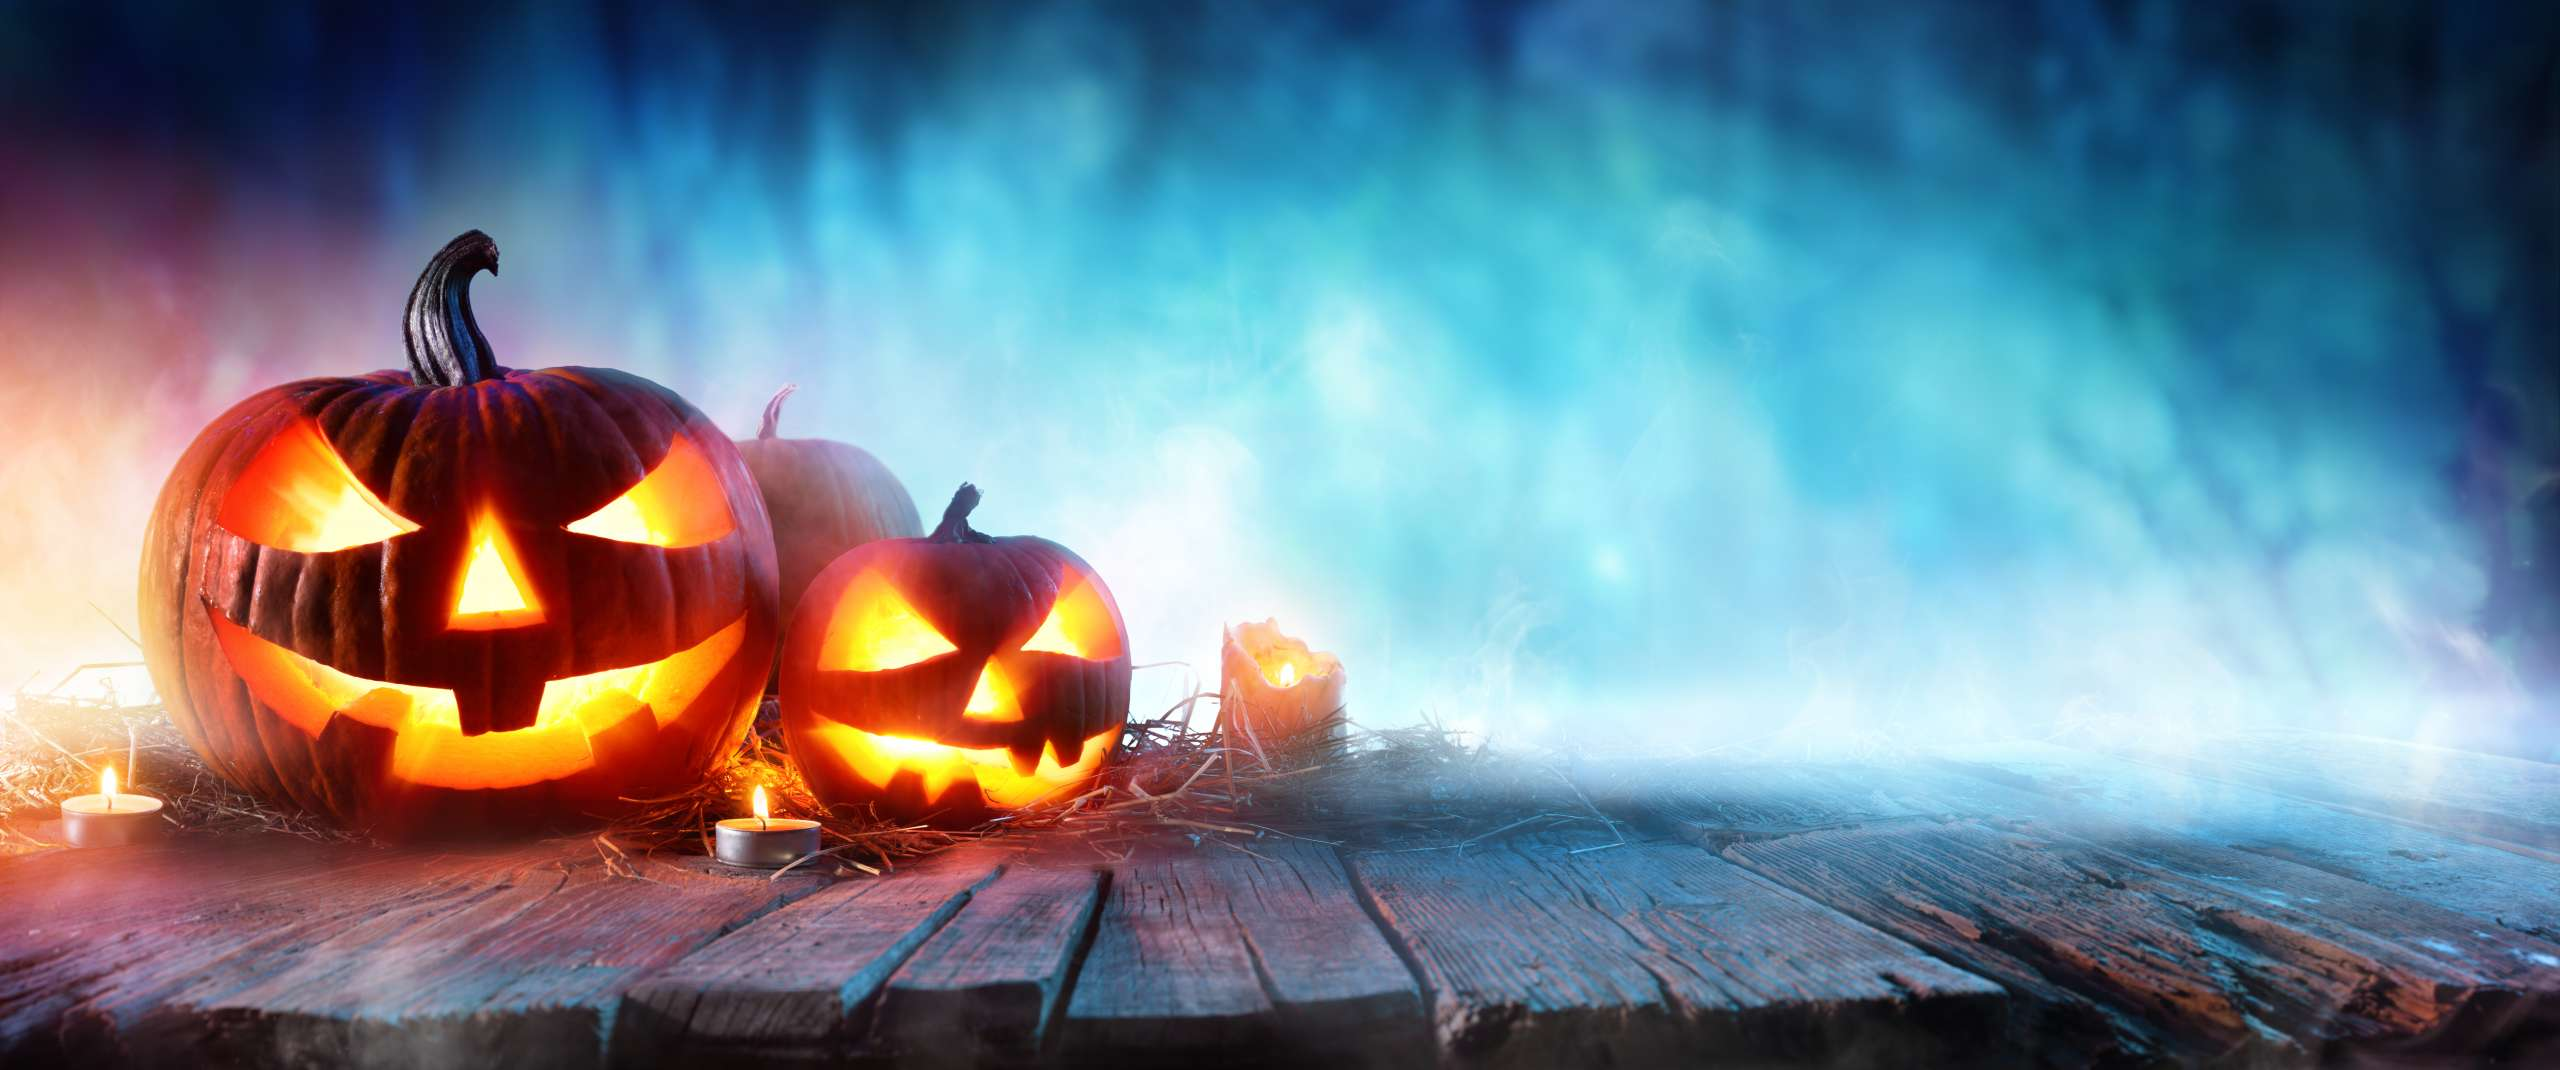 Halloween,Pumpkins,On,Wood,In,A,Spooky,Forest,At,Night